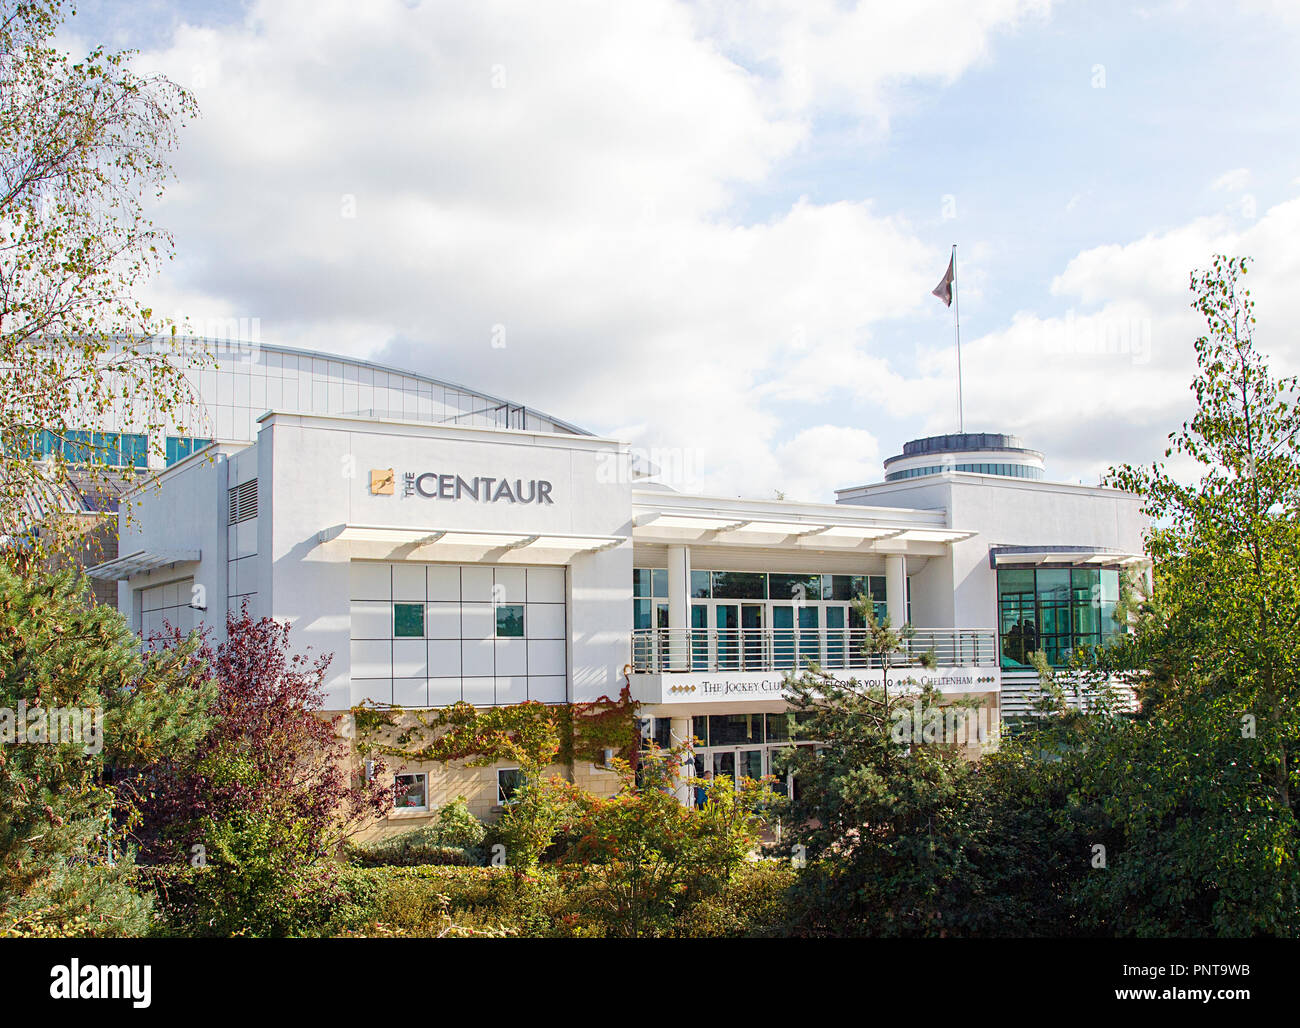 Cheltenham, UK: September 15, 2018: The Centaur is a multi-facility venue located at Cheltenham Racecourse. It can accommodate 800 delegates. - Stock Image